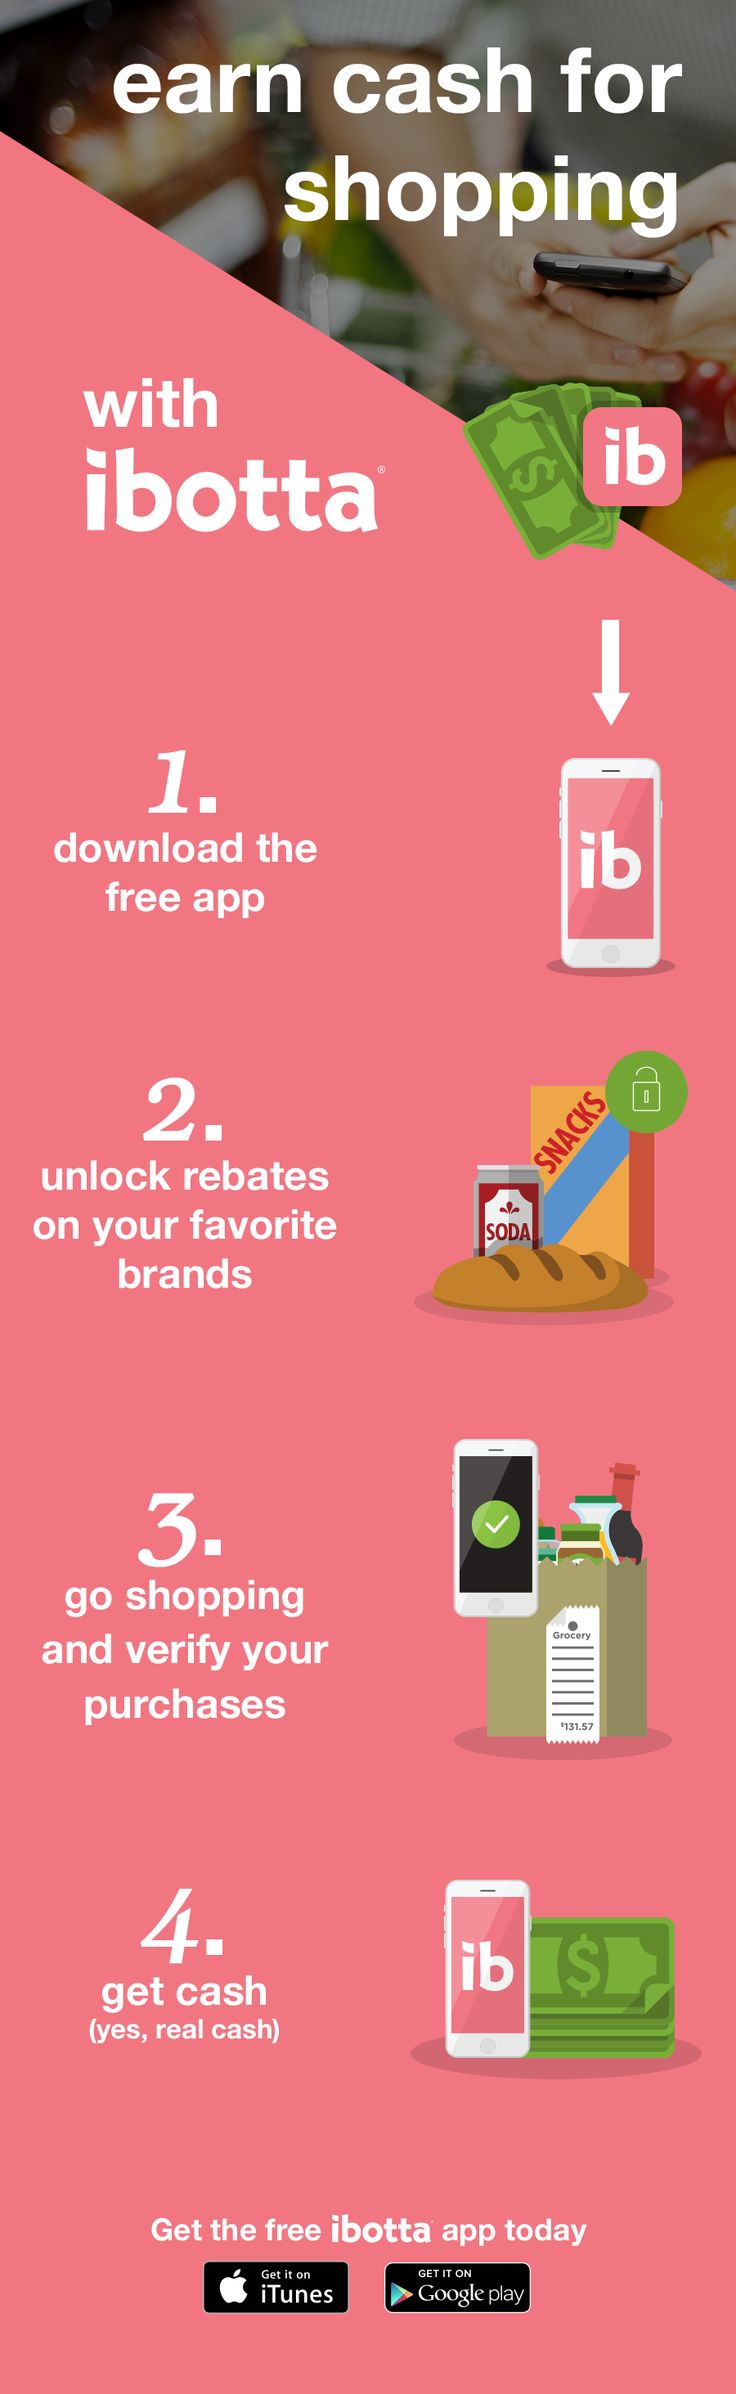 """Install the free Ibotta app and get an extra $10 when you register with referral code, """"Pinterest"""""""